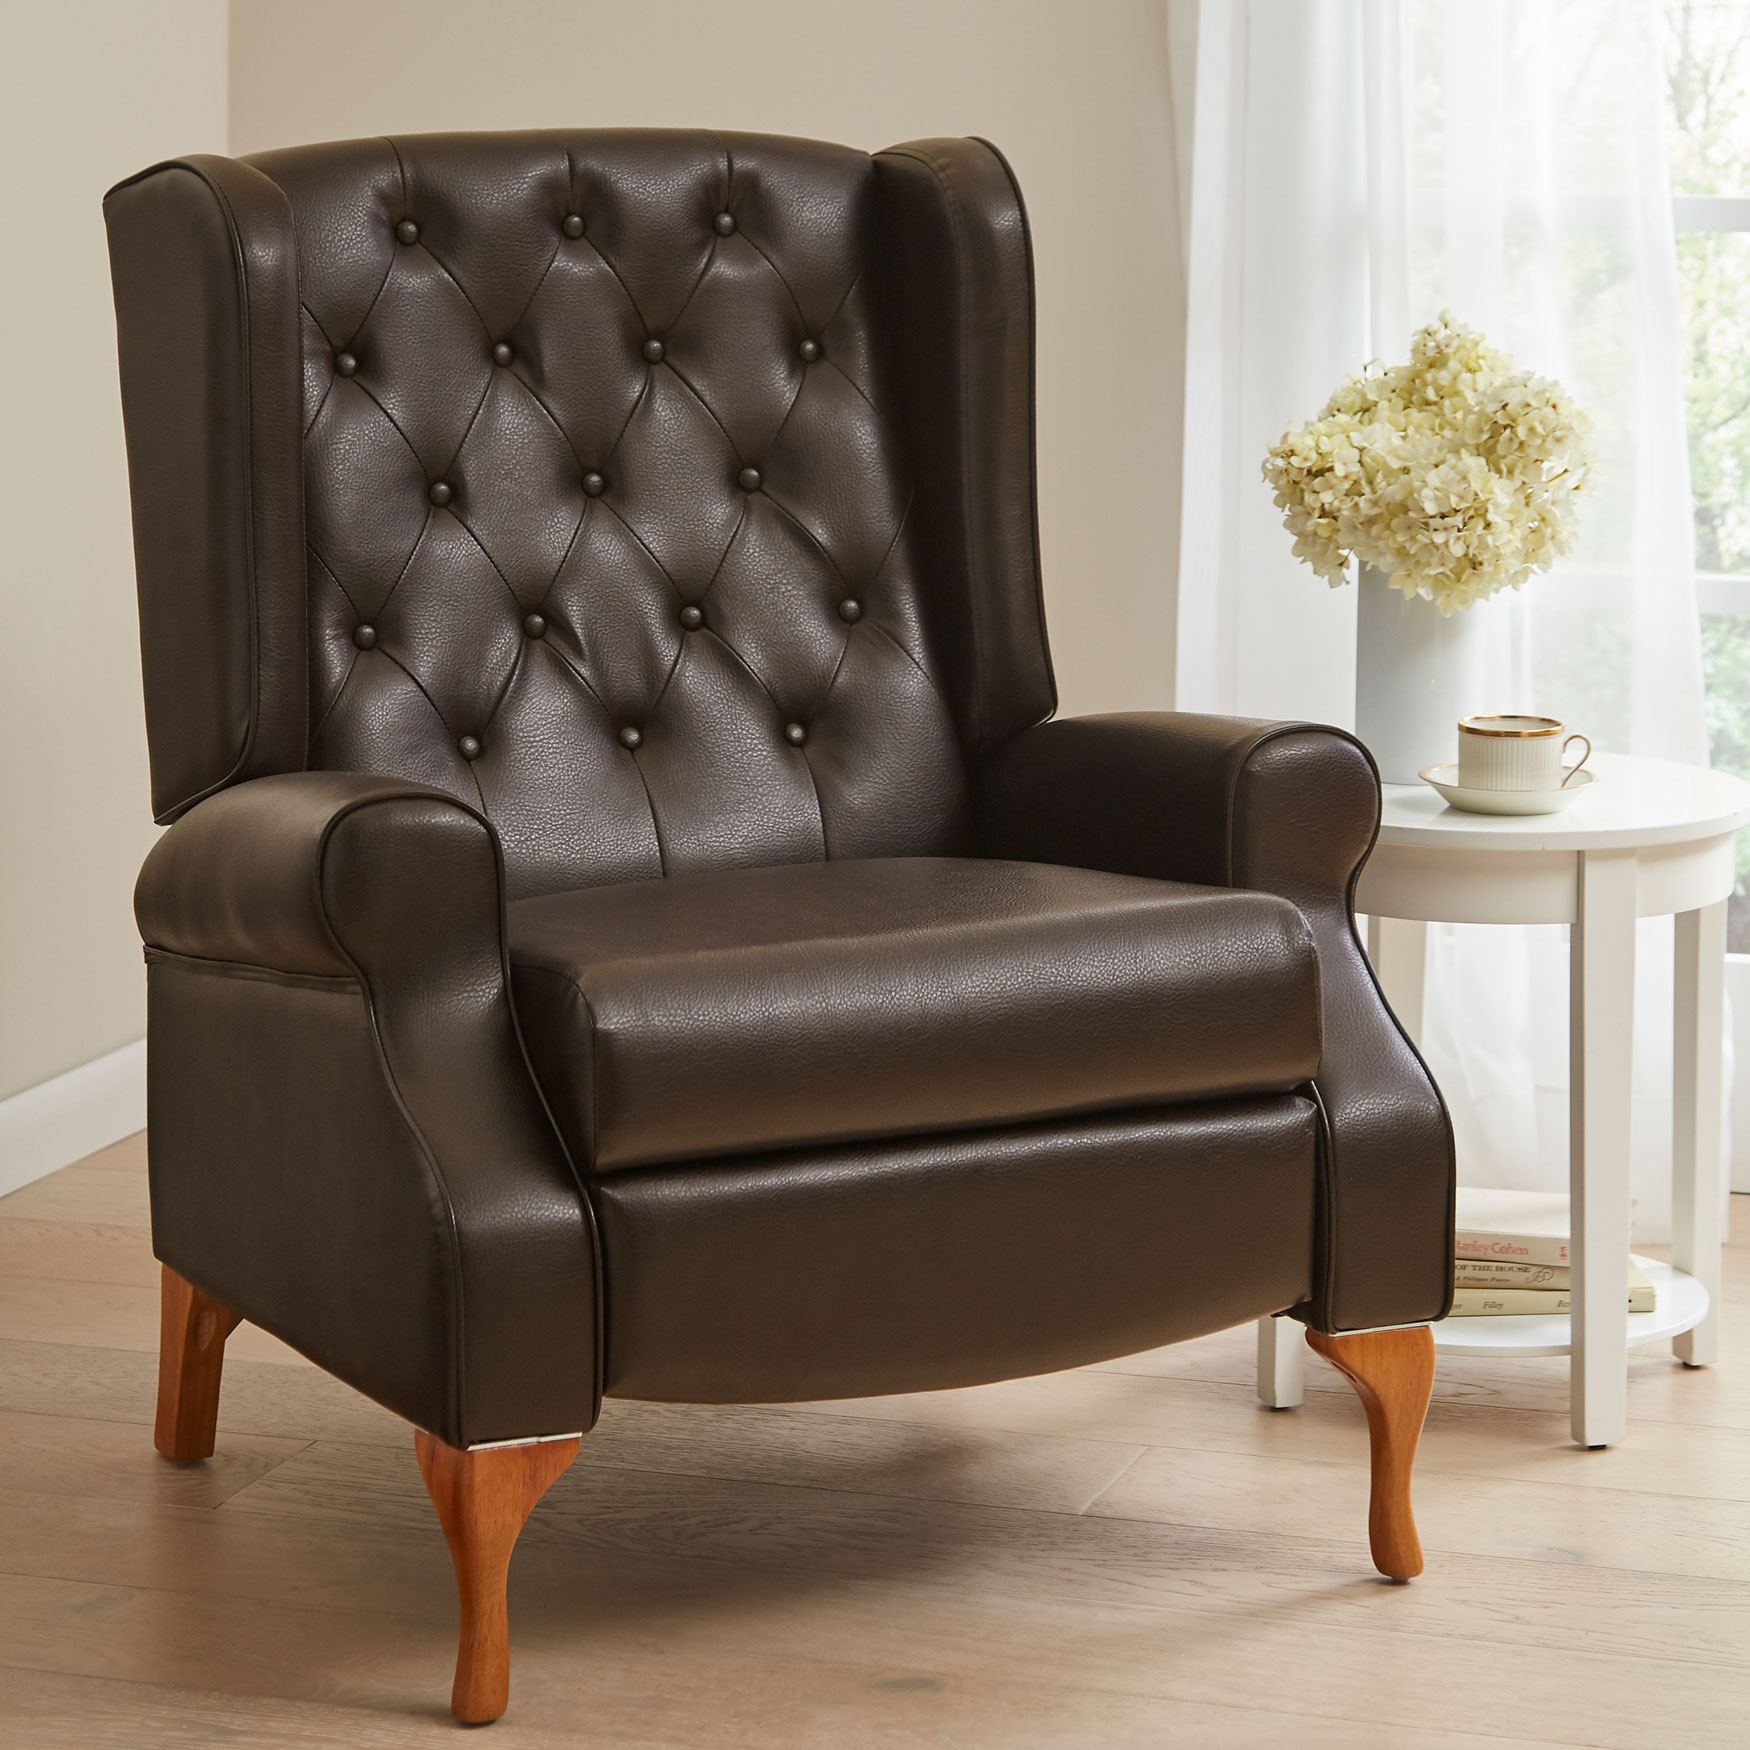 Wingback Tufted Chair Queen Anne Style Tufted Wingback Recliner